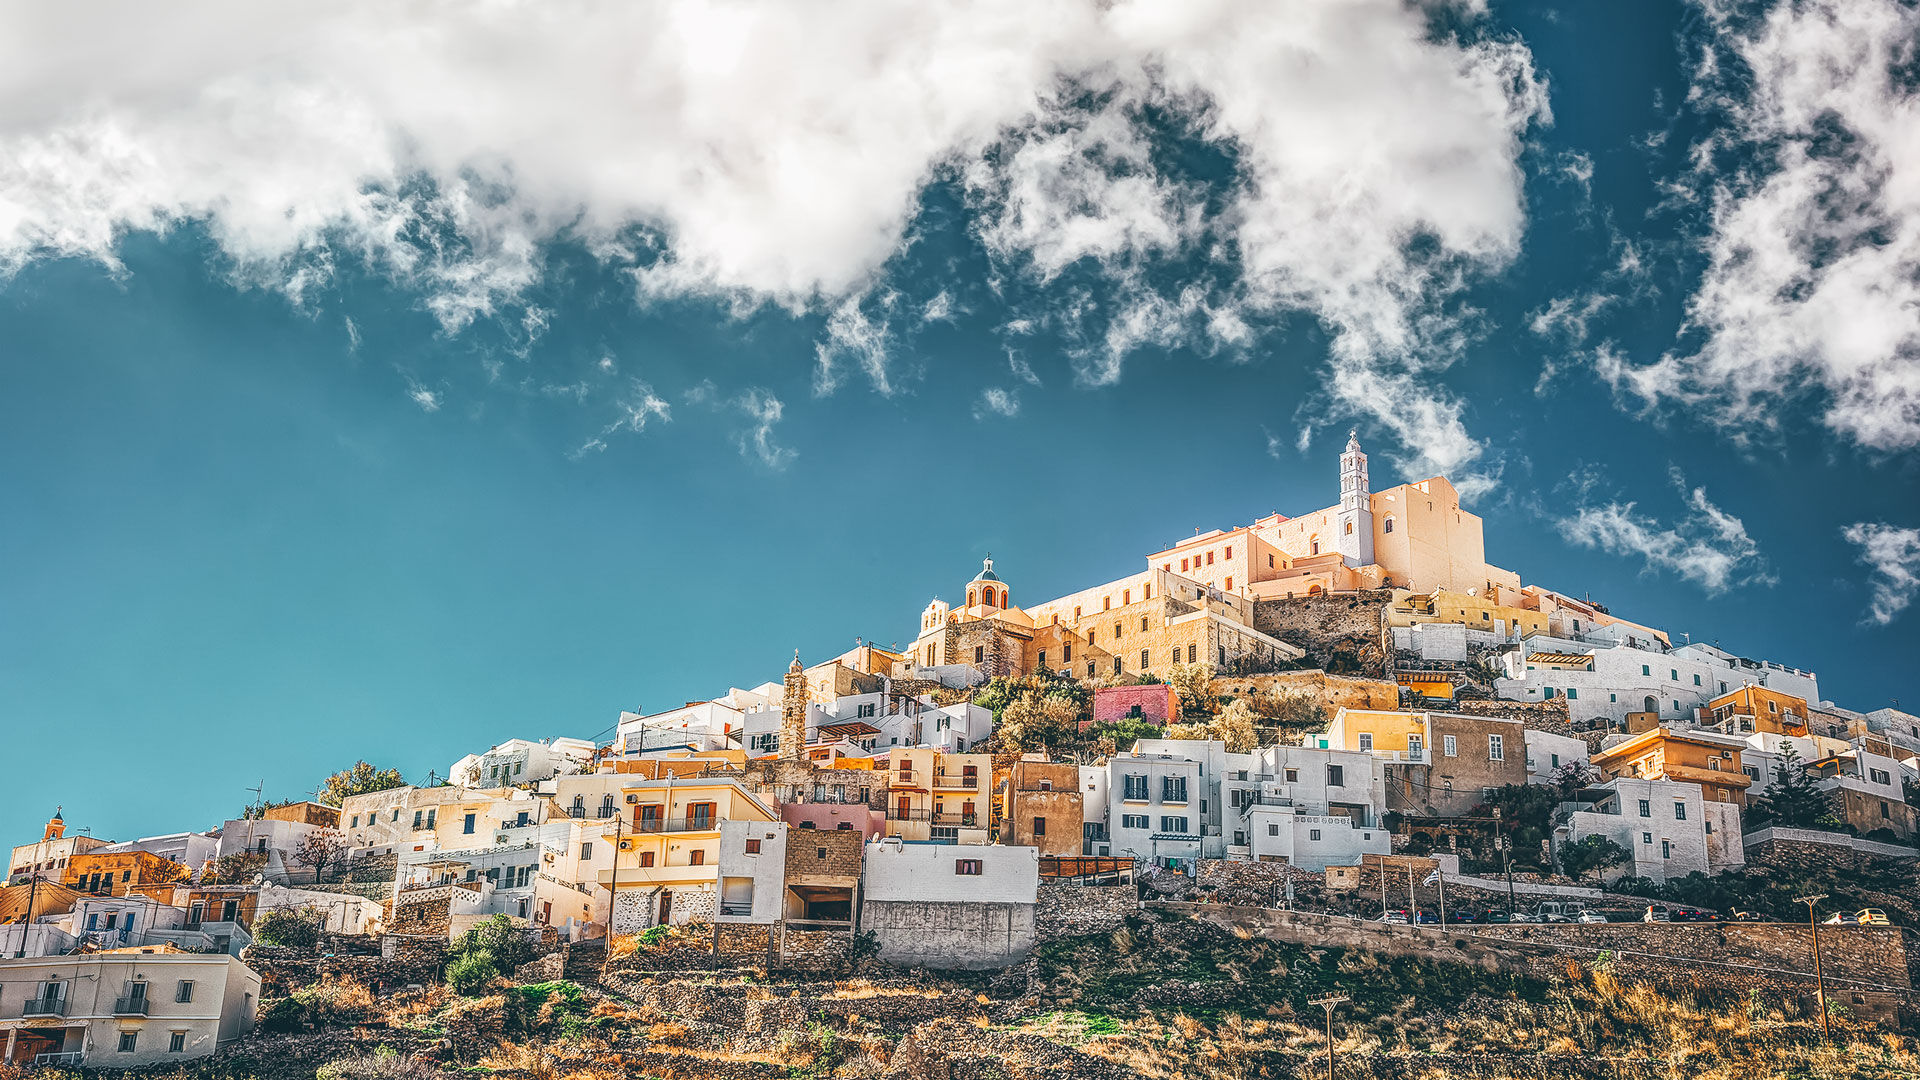 To meander through the cobblestone streets of Upper Syros (as the name translates) is to uncover the medieval and Catholic character